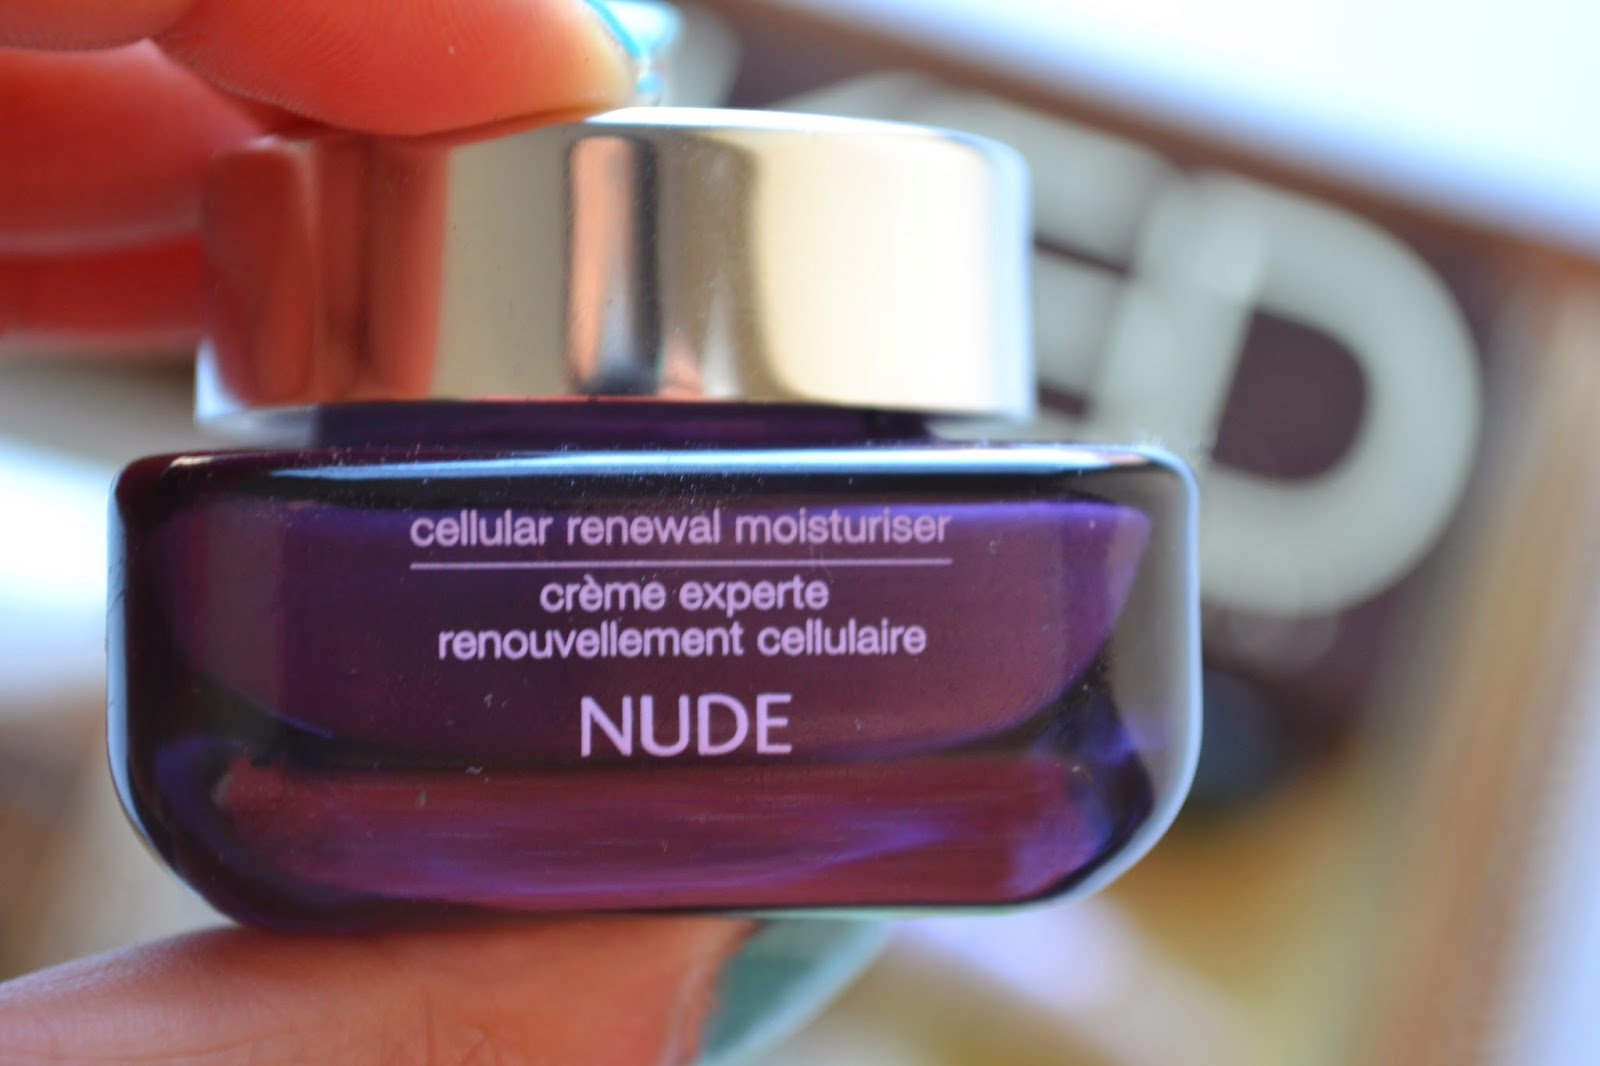 Cellular Renewal Moisturiser